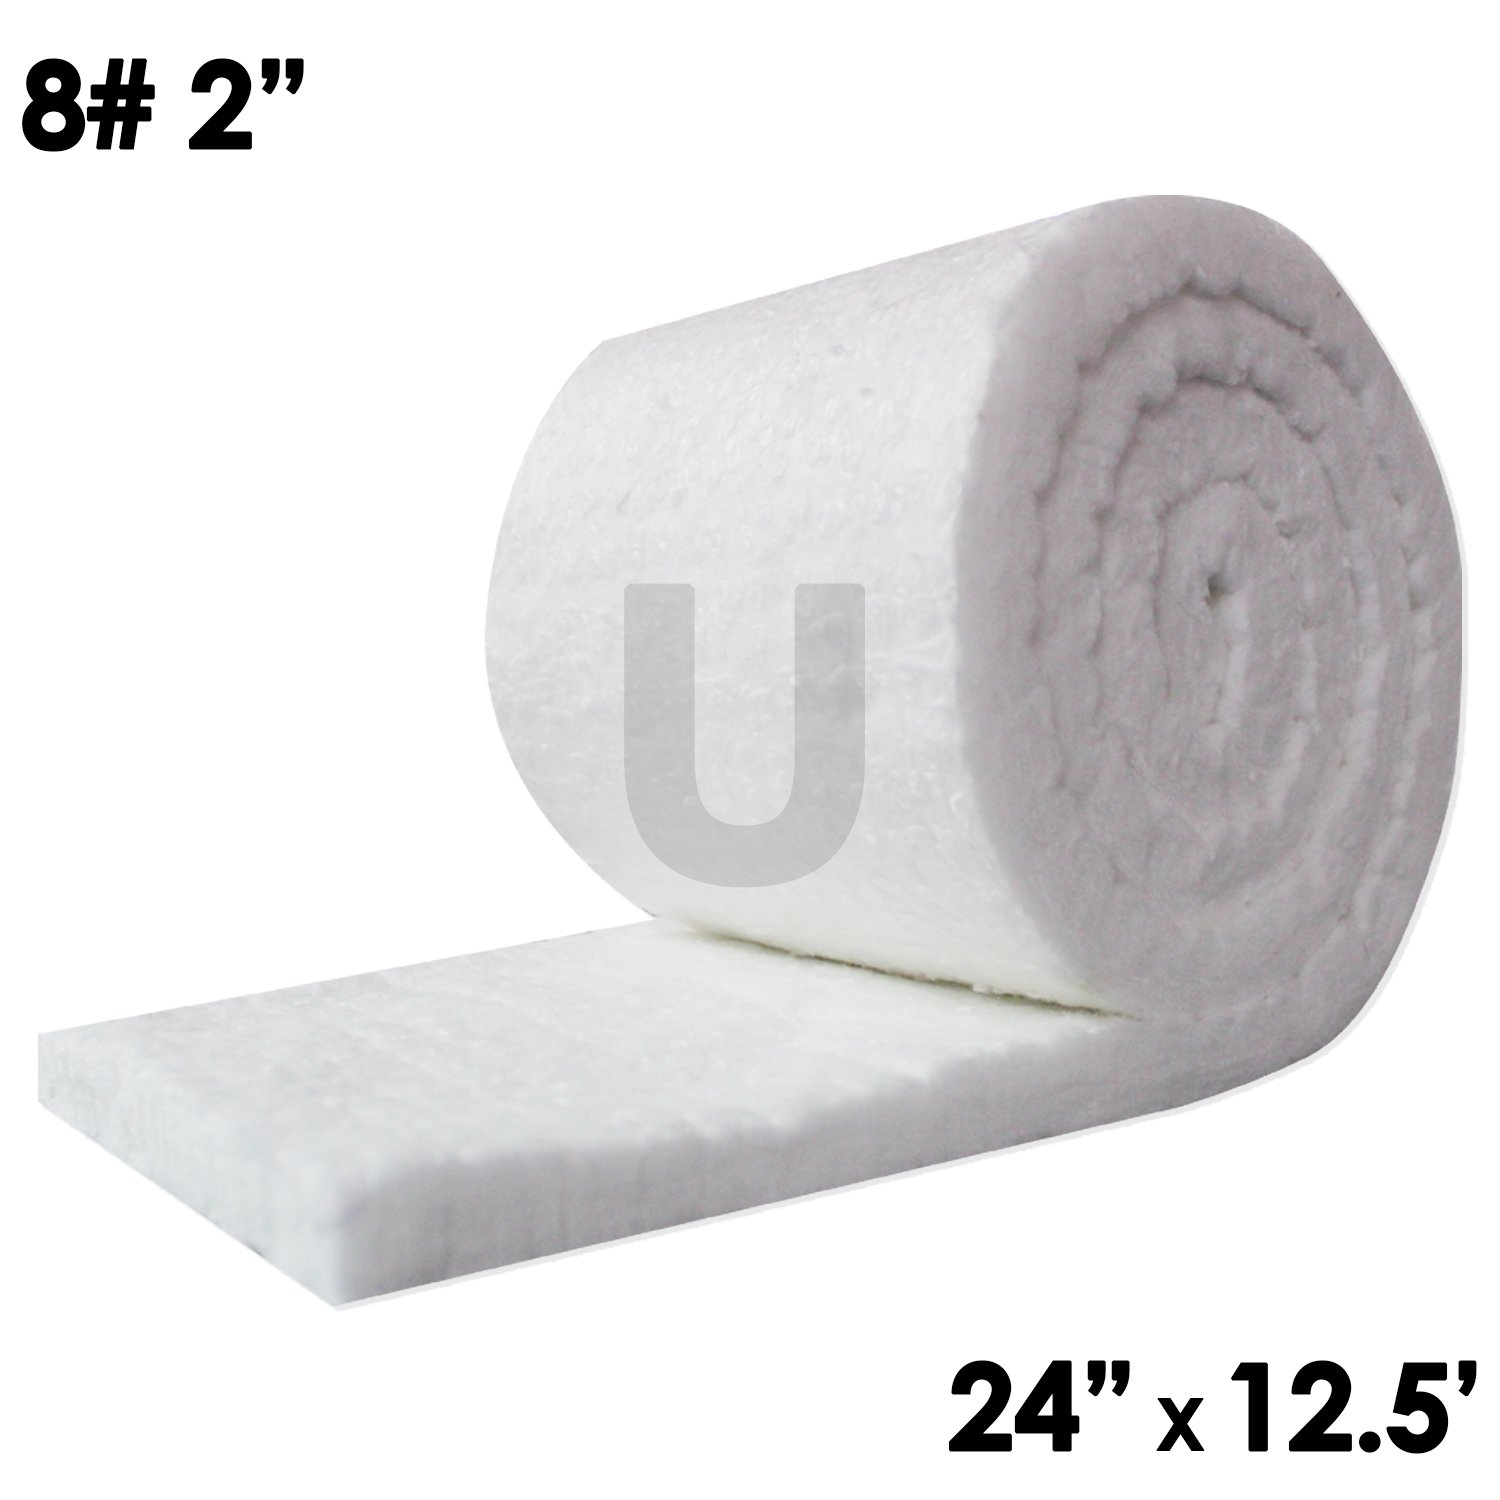 1//2 x 19.7 x 39.4 Kilns Furnaces Forges Ceramic Fiber Board Insulation 2300F Stoves for Wood Ovens